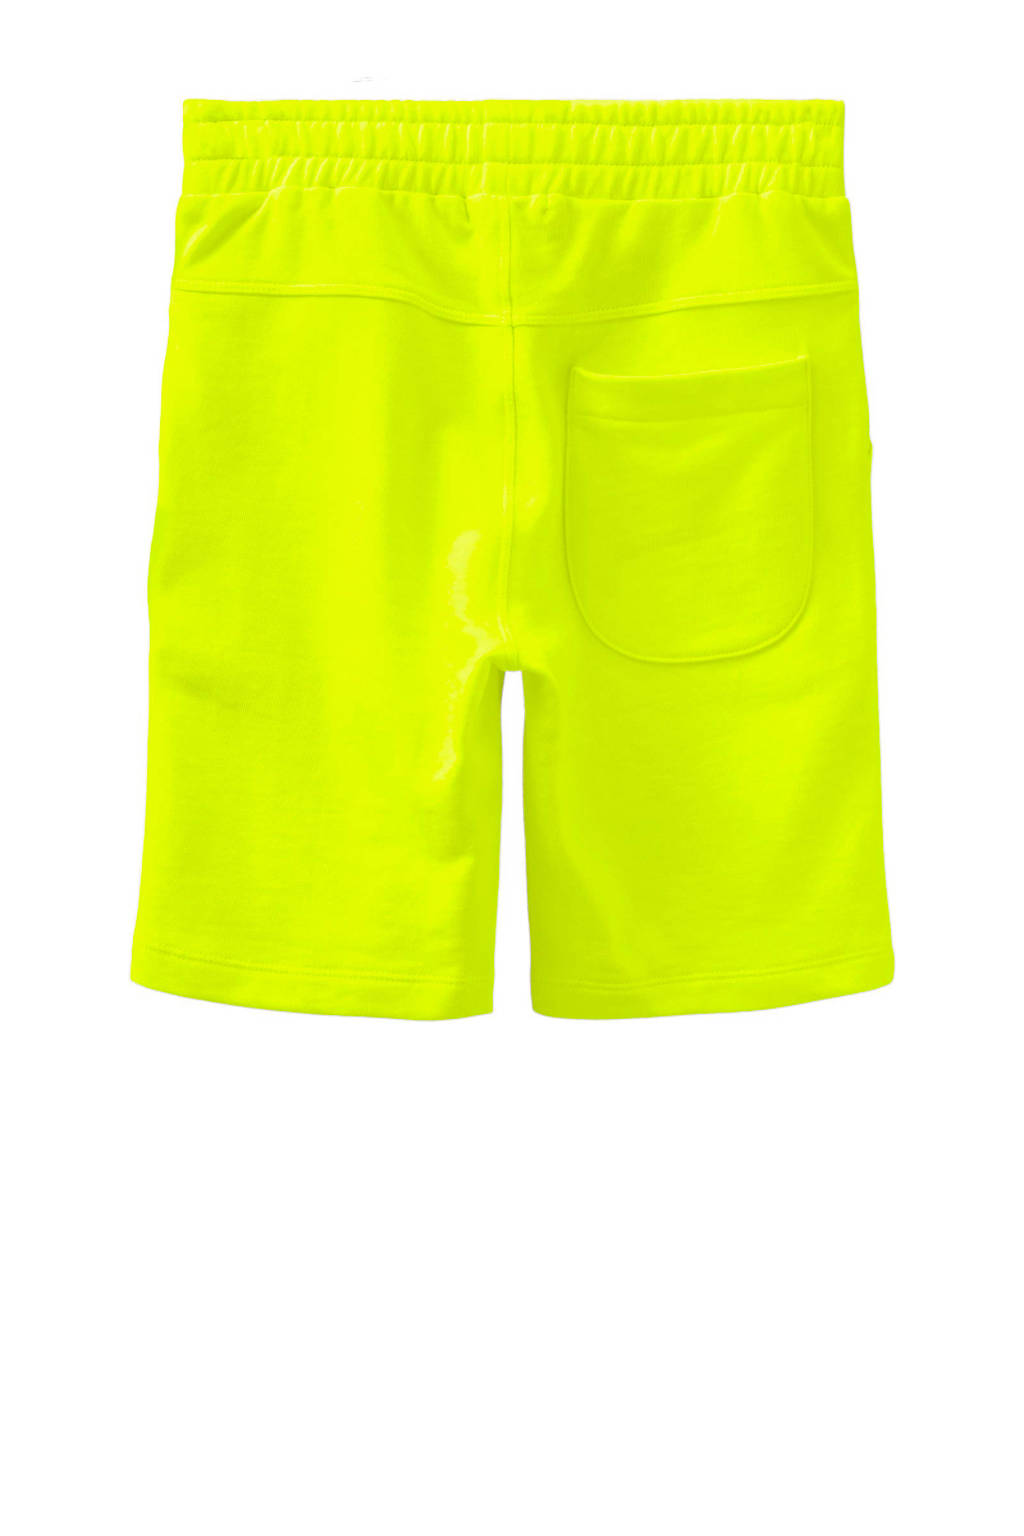 NAME IT KIDS sweatshort Vermos geel, Geel